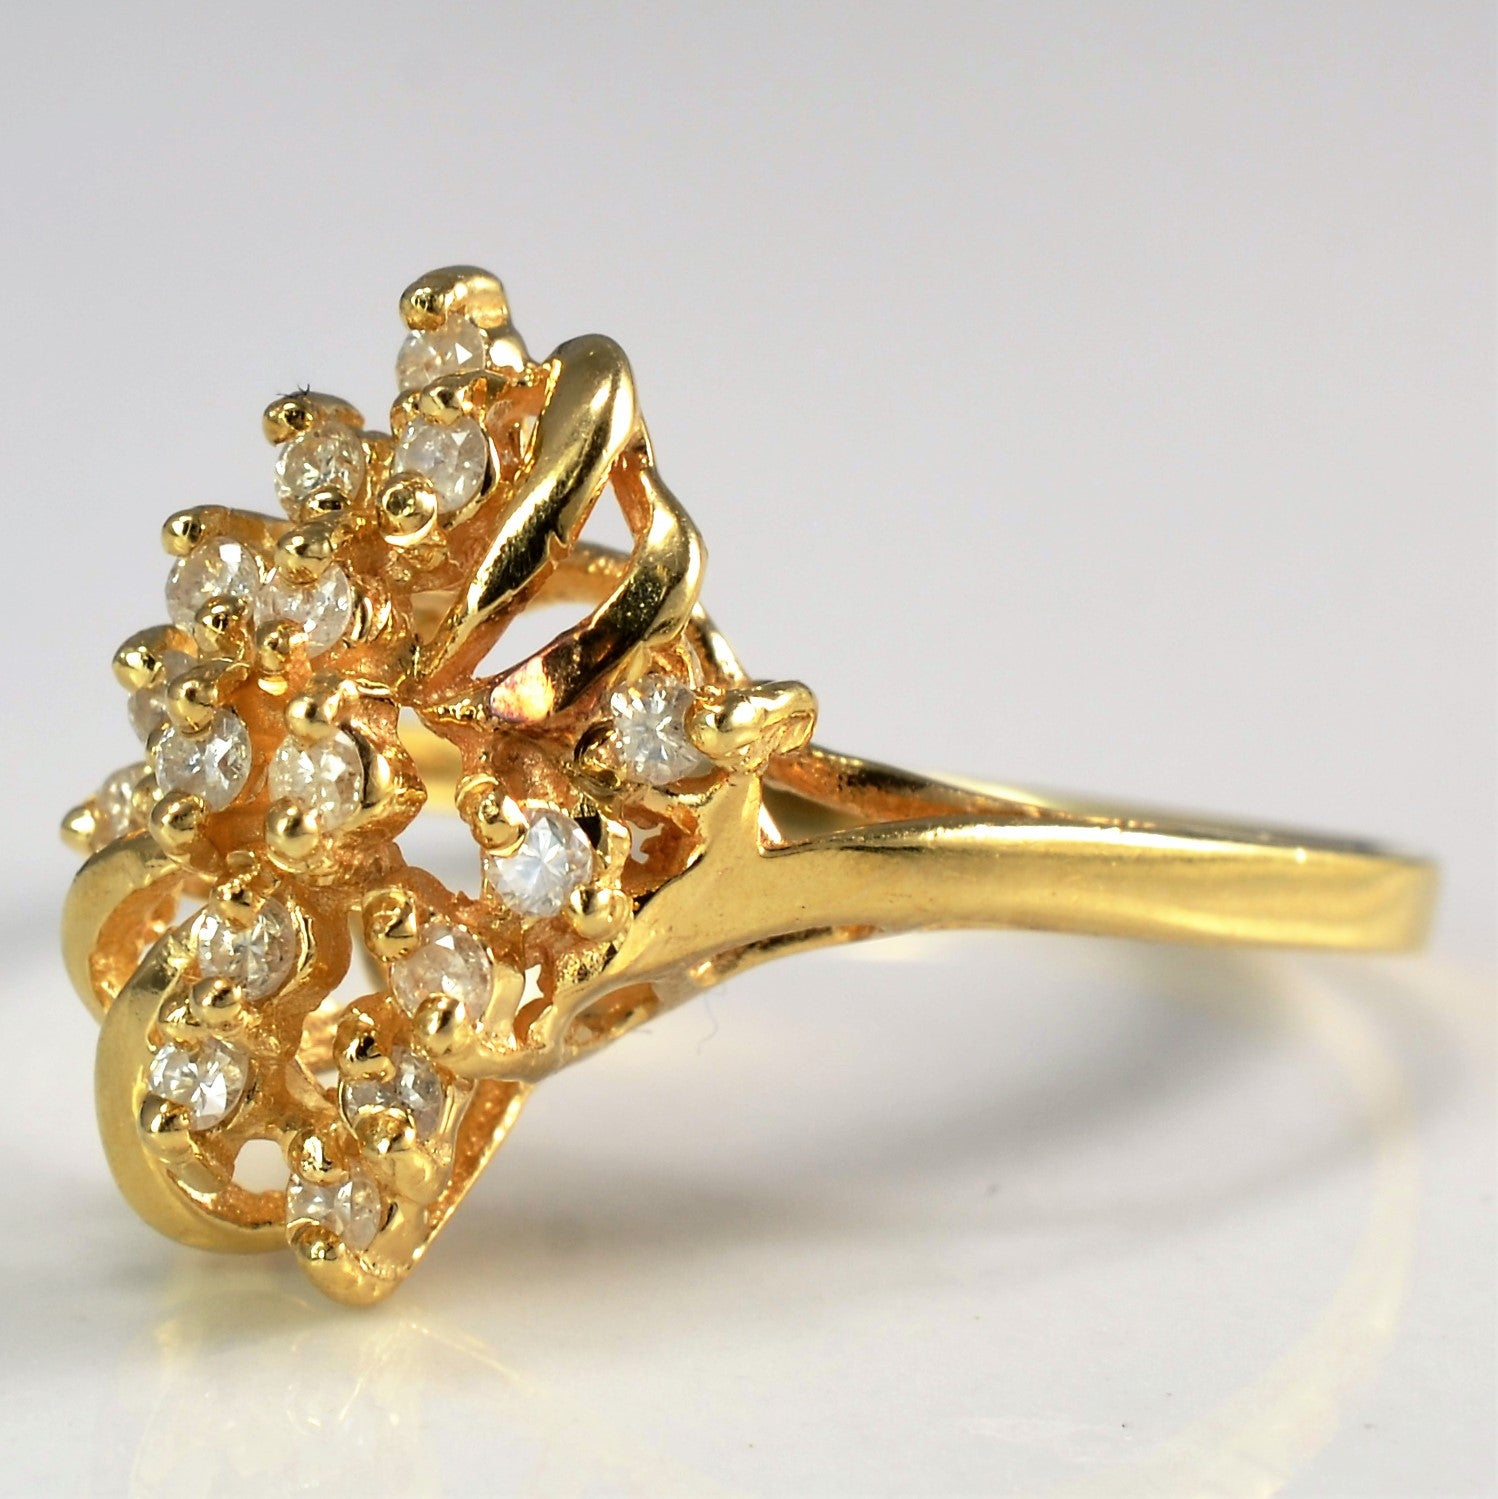 Intricate Yellow Gold Diamond Cocktail Ring | 0.15 ctw, SZ 6.5 |